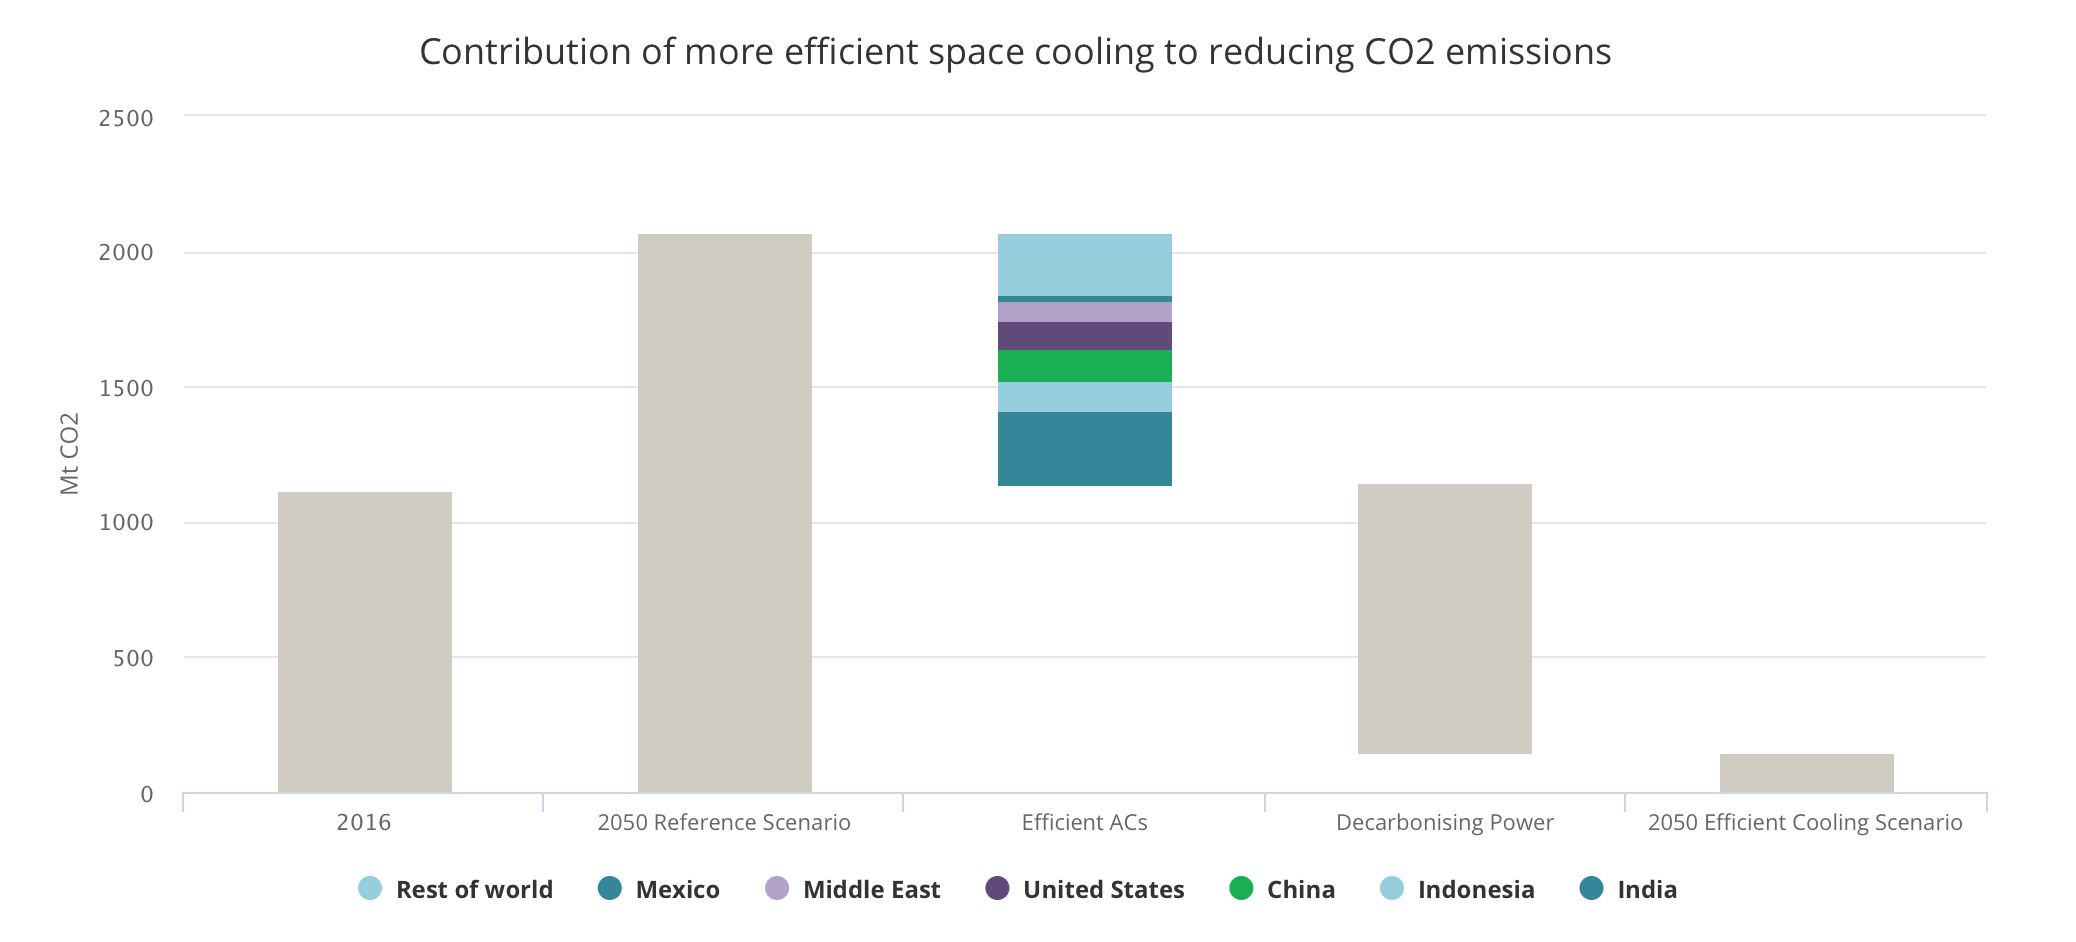 More efficient ACs cut CO2 emissions from space cooling in half and combined with cleaner power sources can radically reduce overall emissions. Local air pollution is also drastically cut.